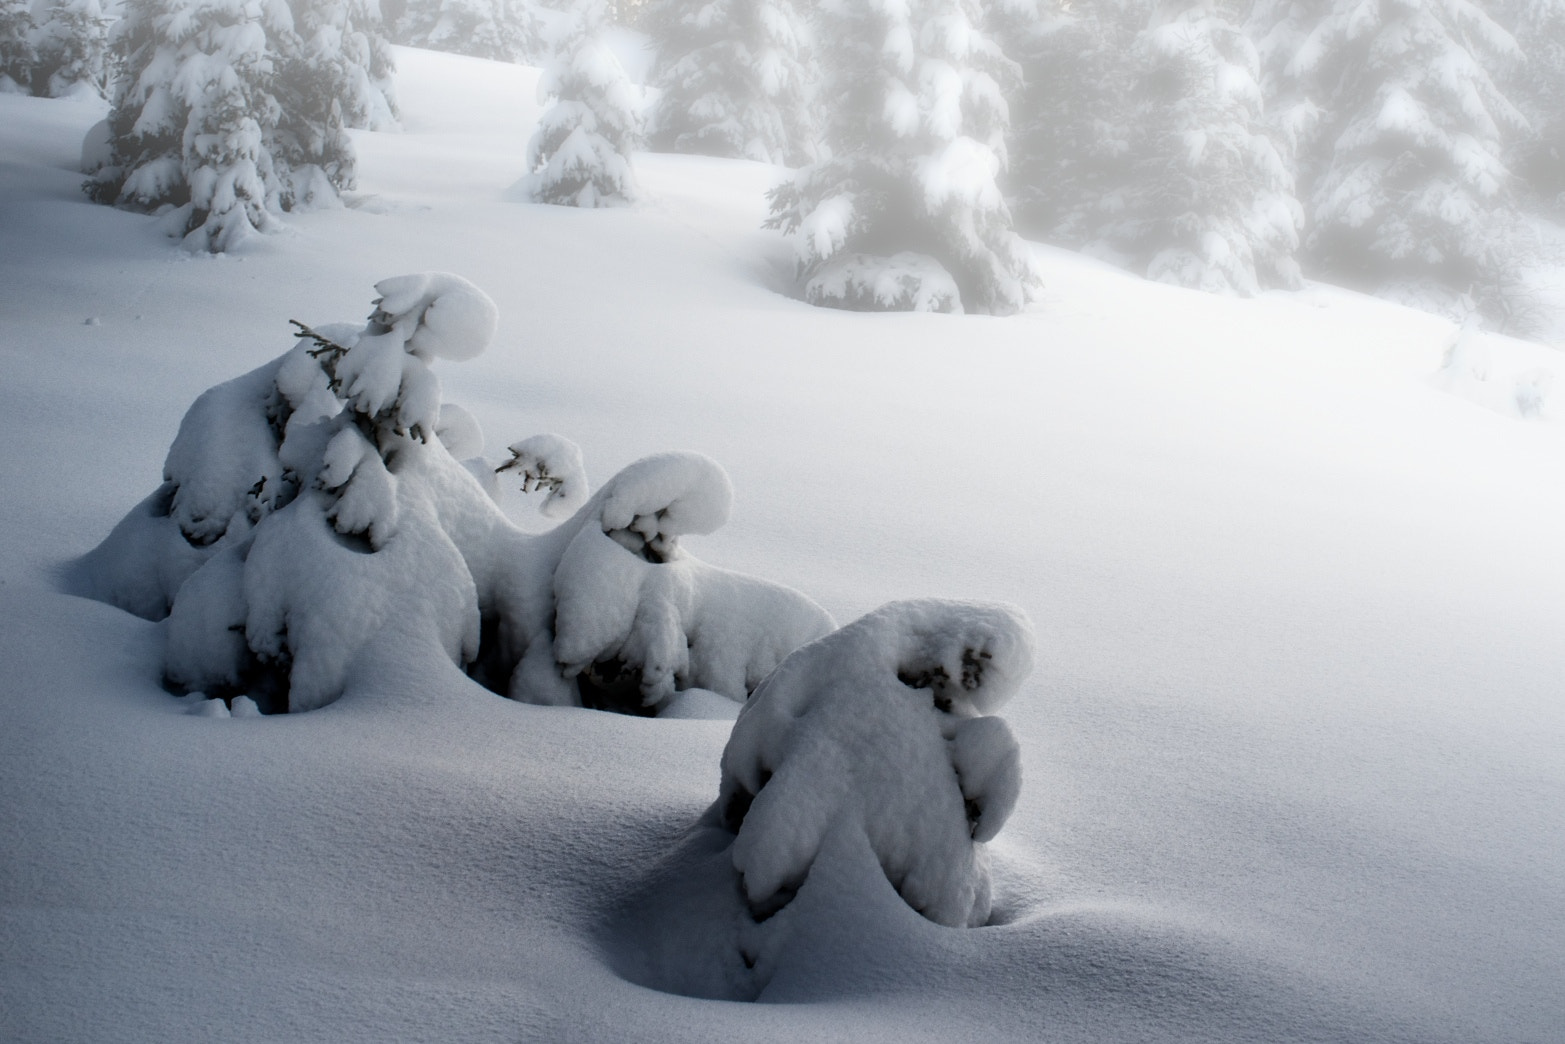 Photograph Snow creatures II by René Mederlet on 500px